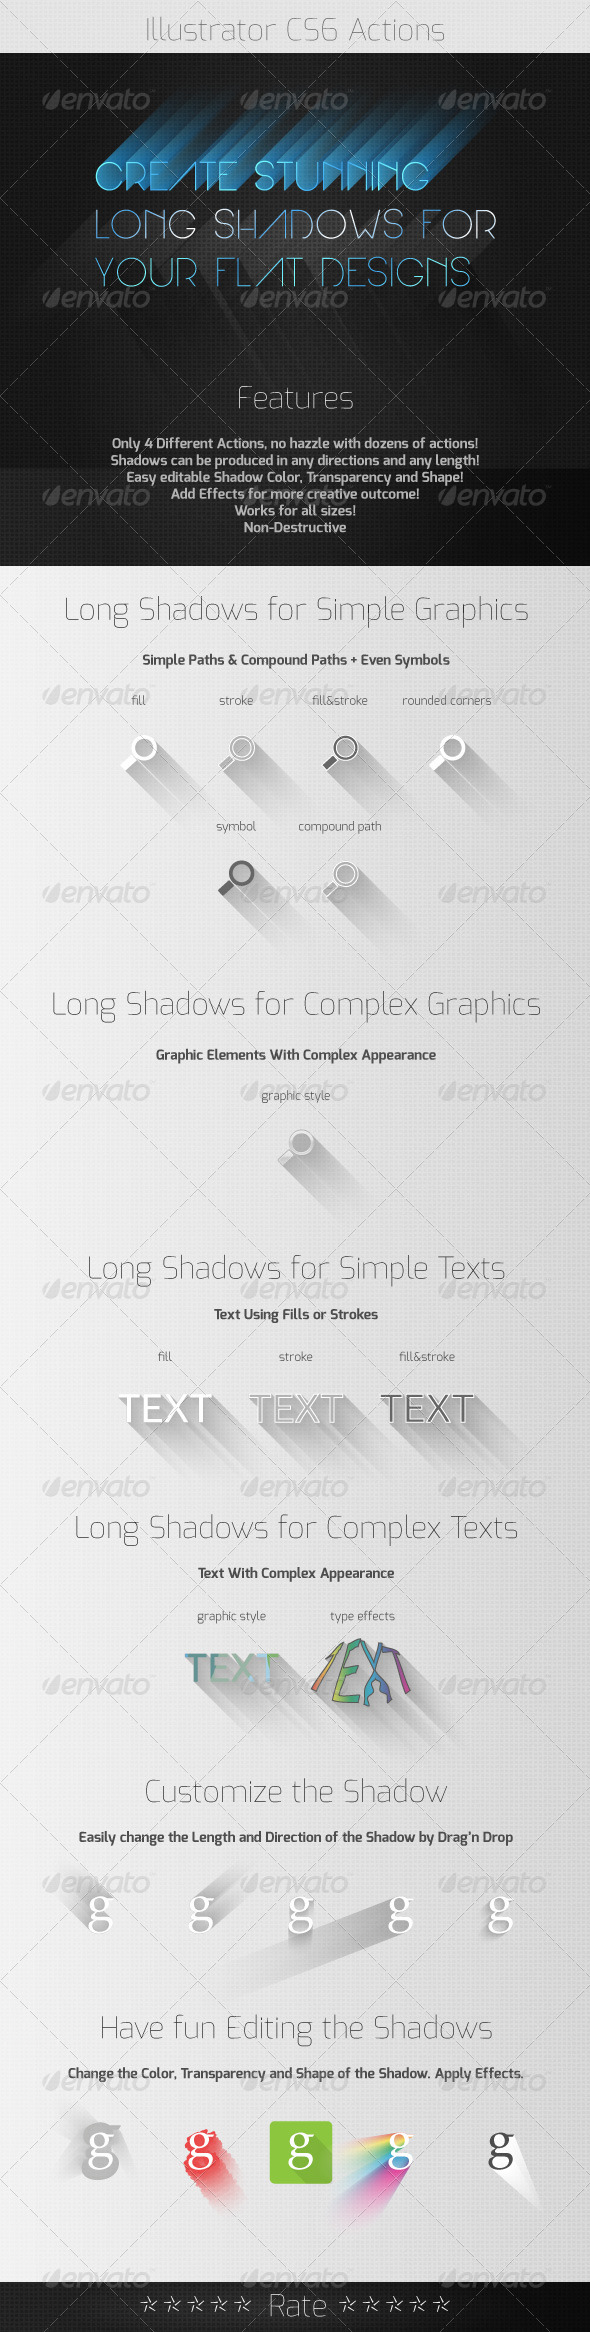 GraphicRiver Long Shadow Actions in Style of Flat Design 5579527